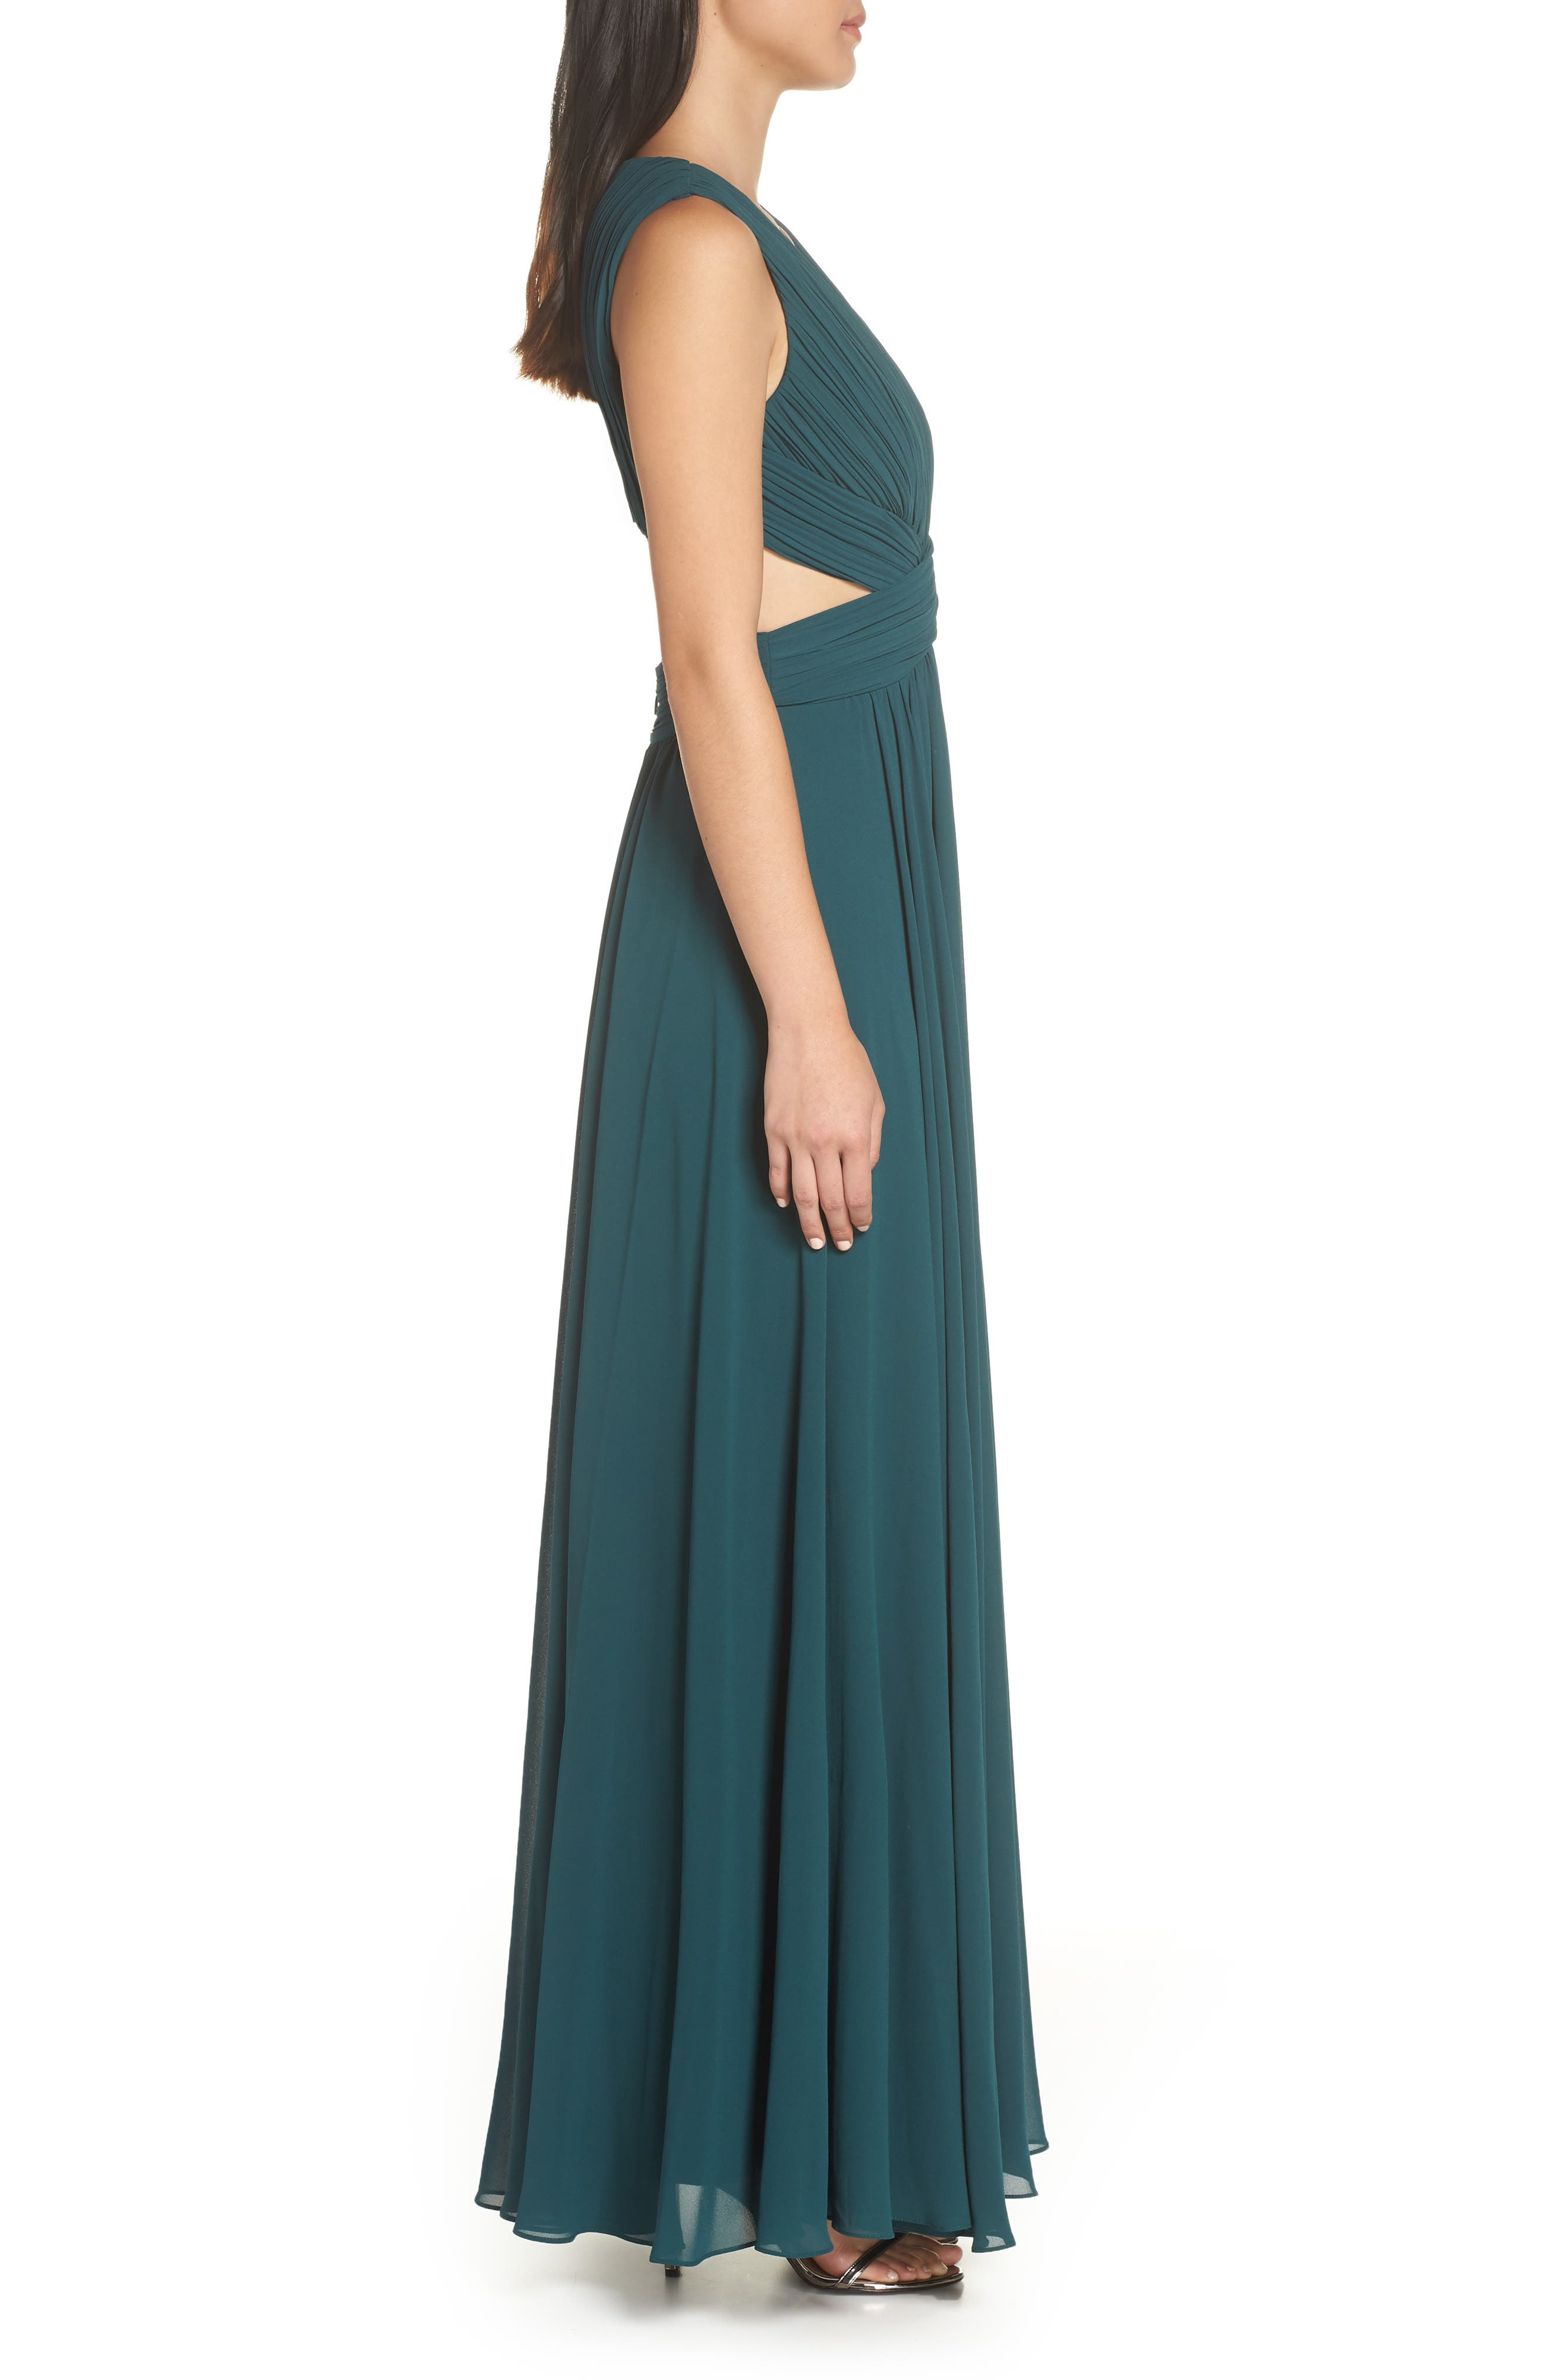 LULUS, Vivid Imagination Chiffon Gown, Alternate thumbnail 4, color, FOREST GREEN